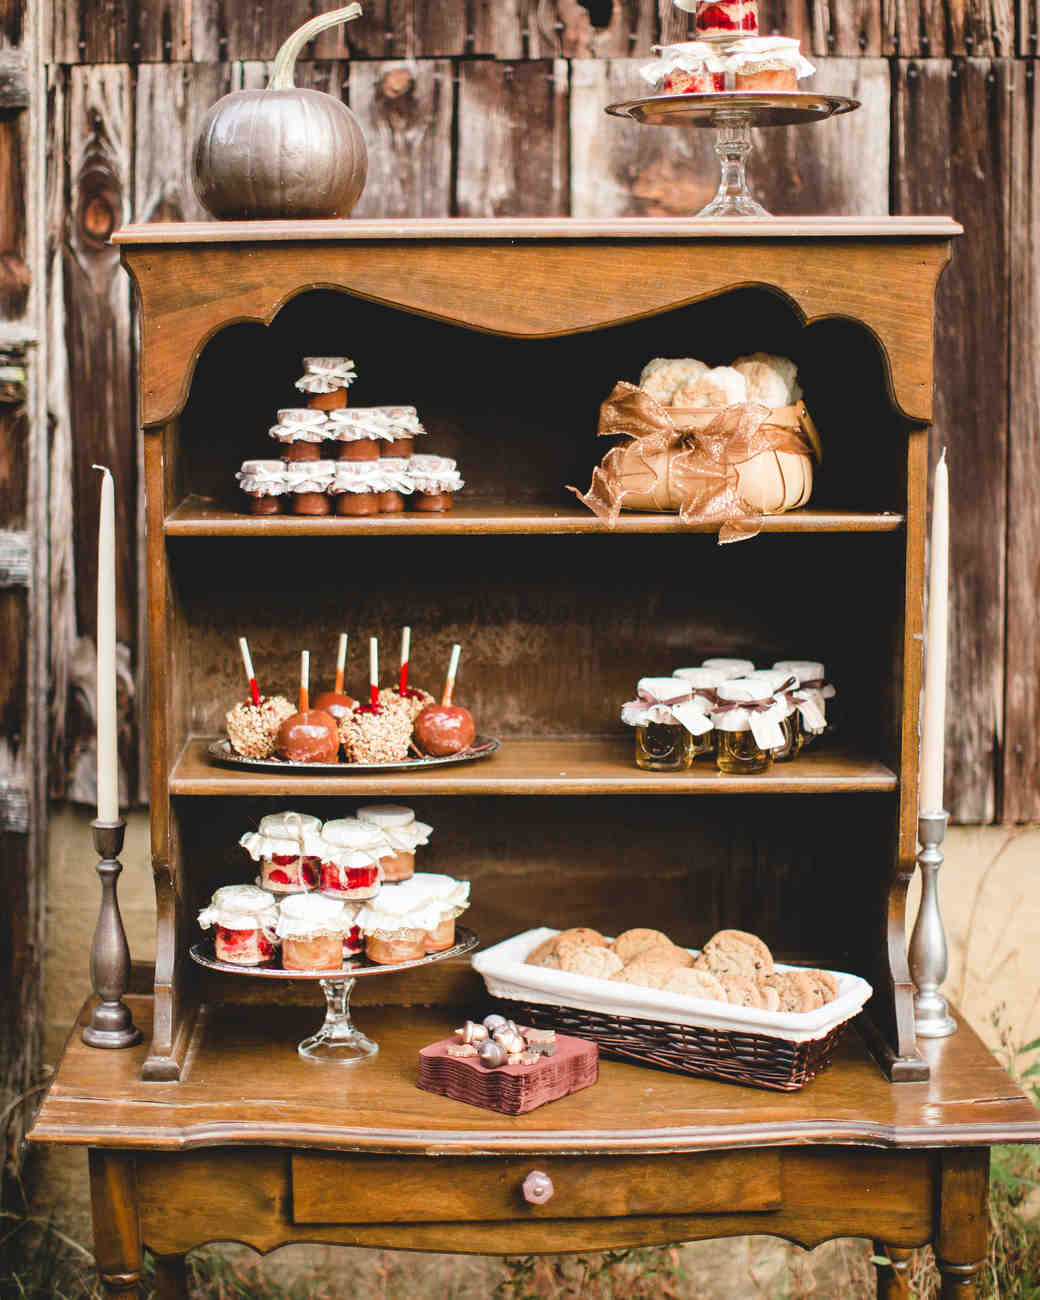 Red Dessert Table For Weddings: 39 Amazing Dessert Tables From Real Weddings